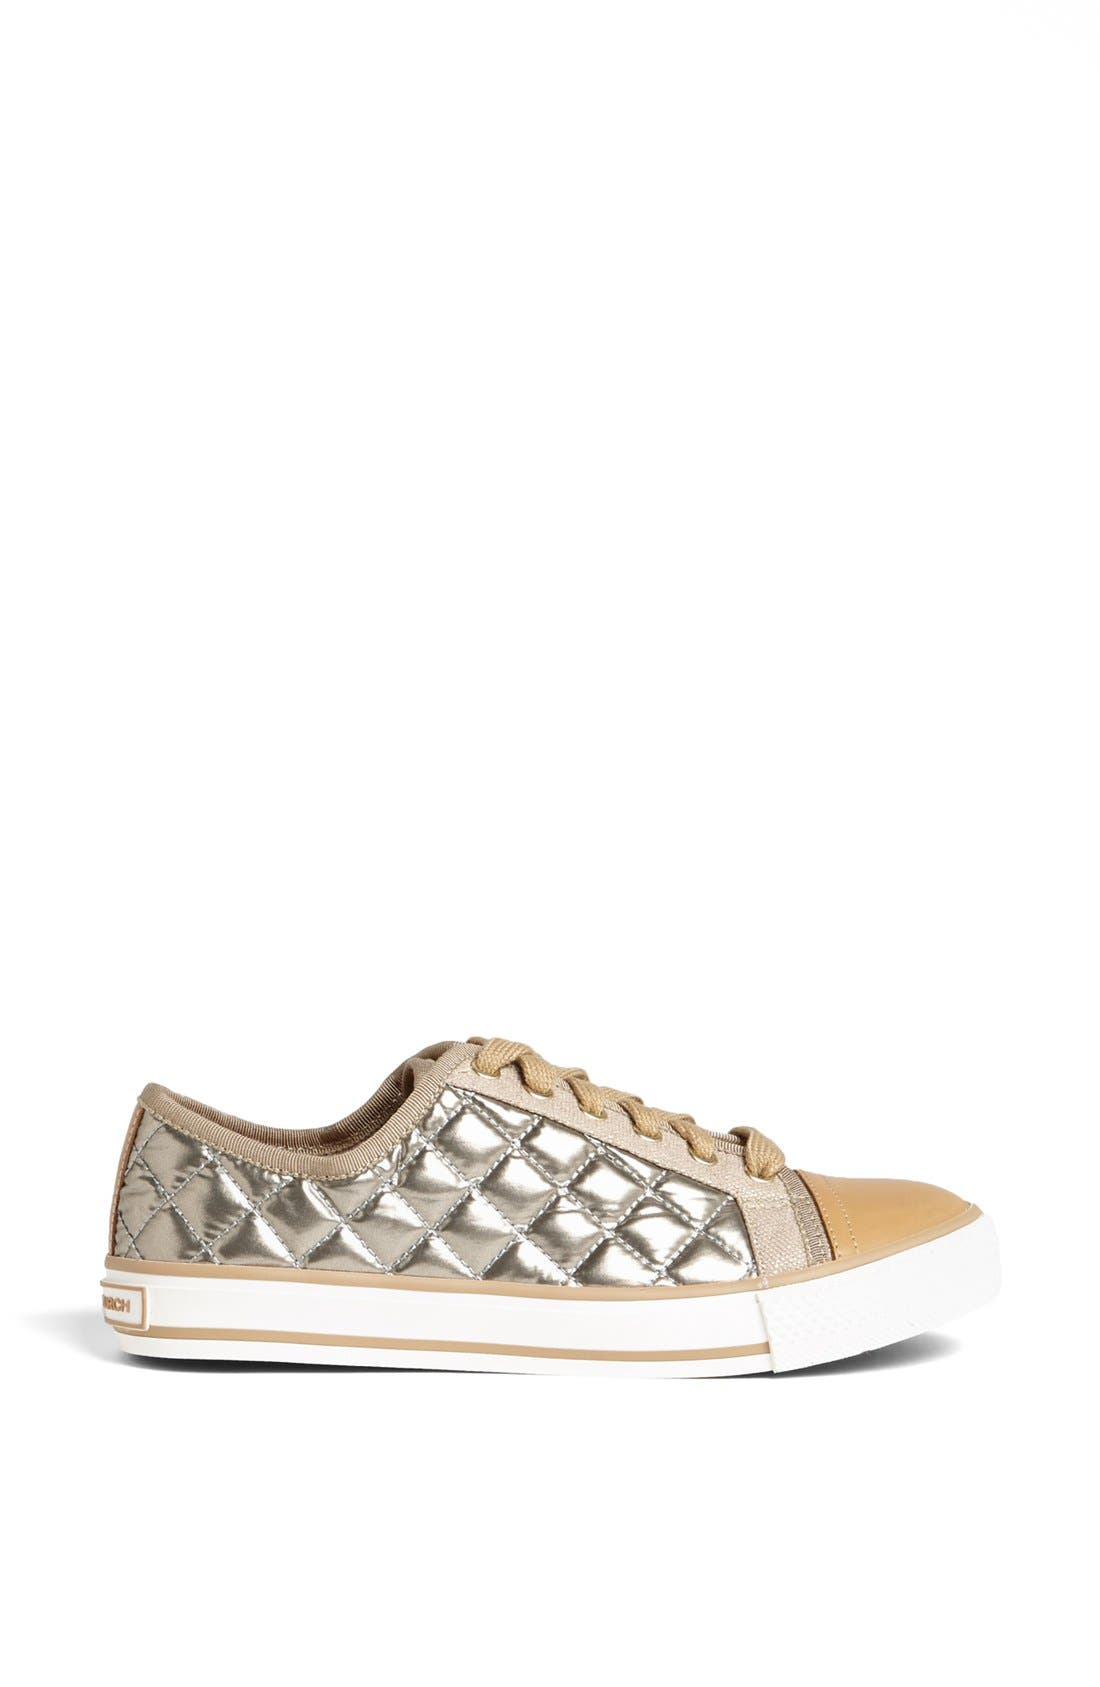 Alternate Image 4  - Tory Burch 'Caspe' Quilted Metallic Leather Sneaker